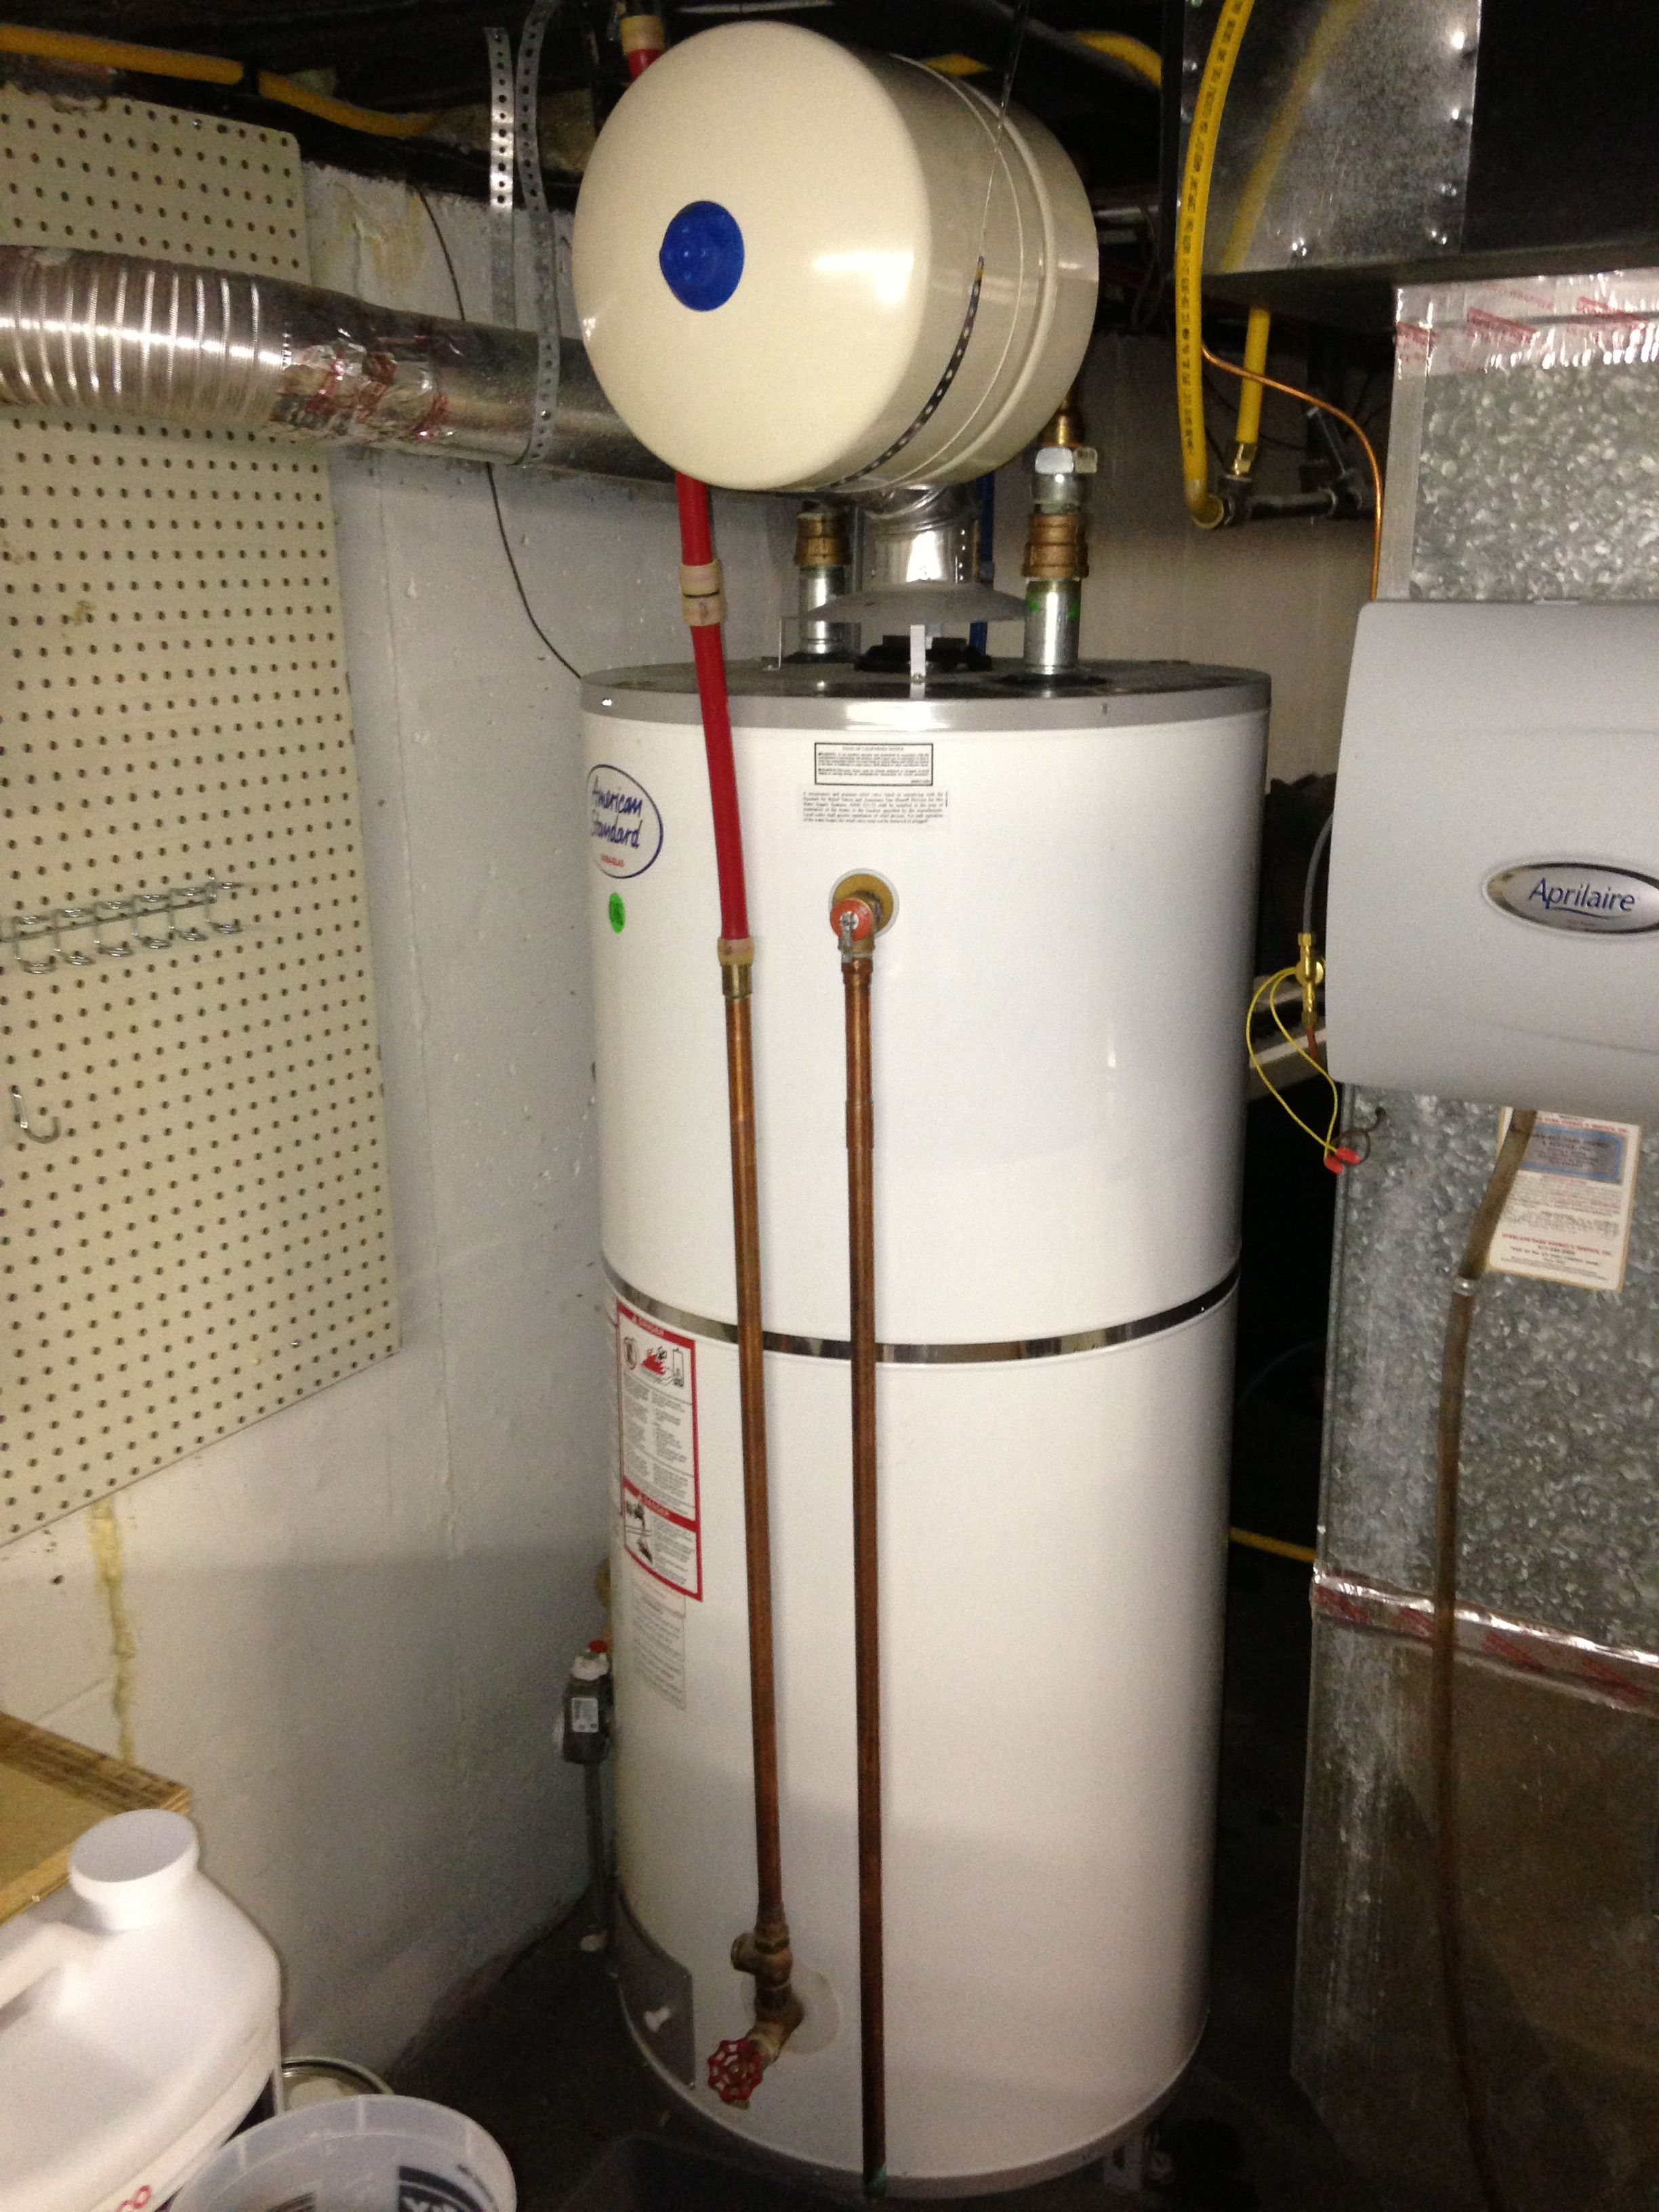 Water Heater Installed In Fairway Ks 66205 With Thermal Expansion